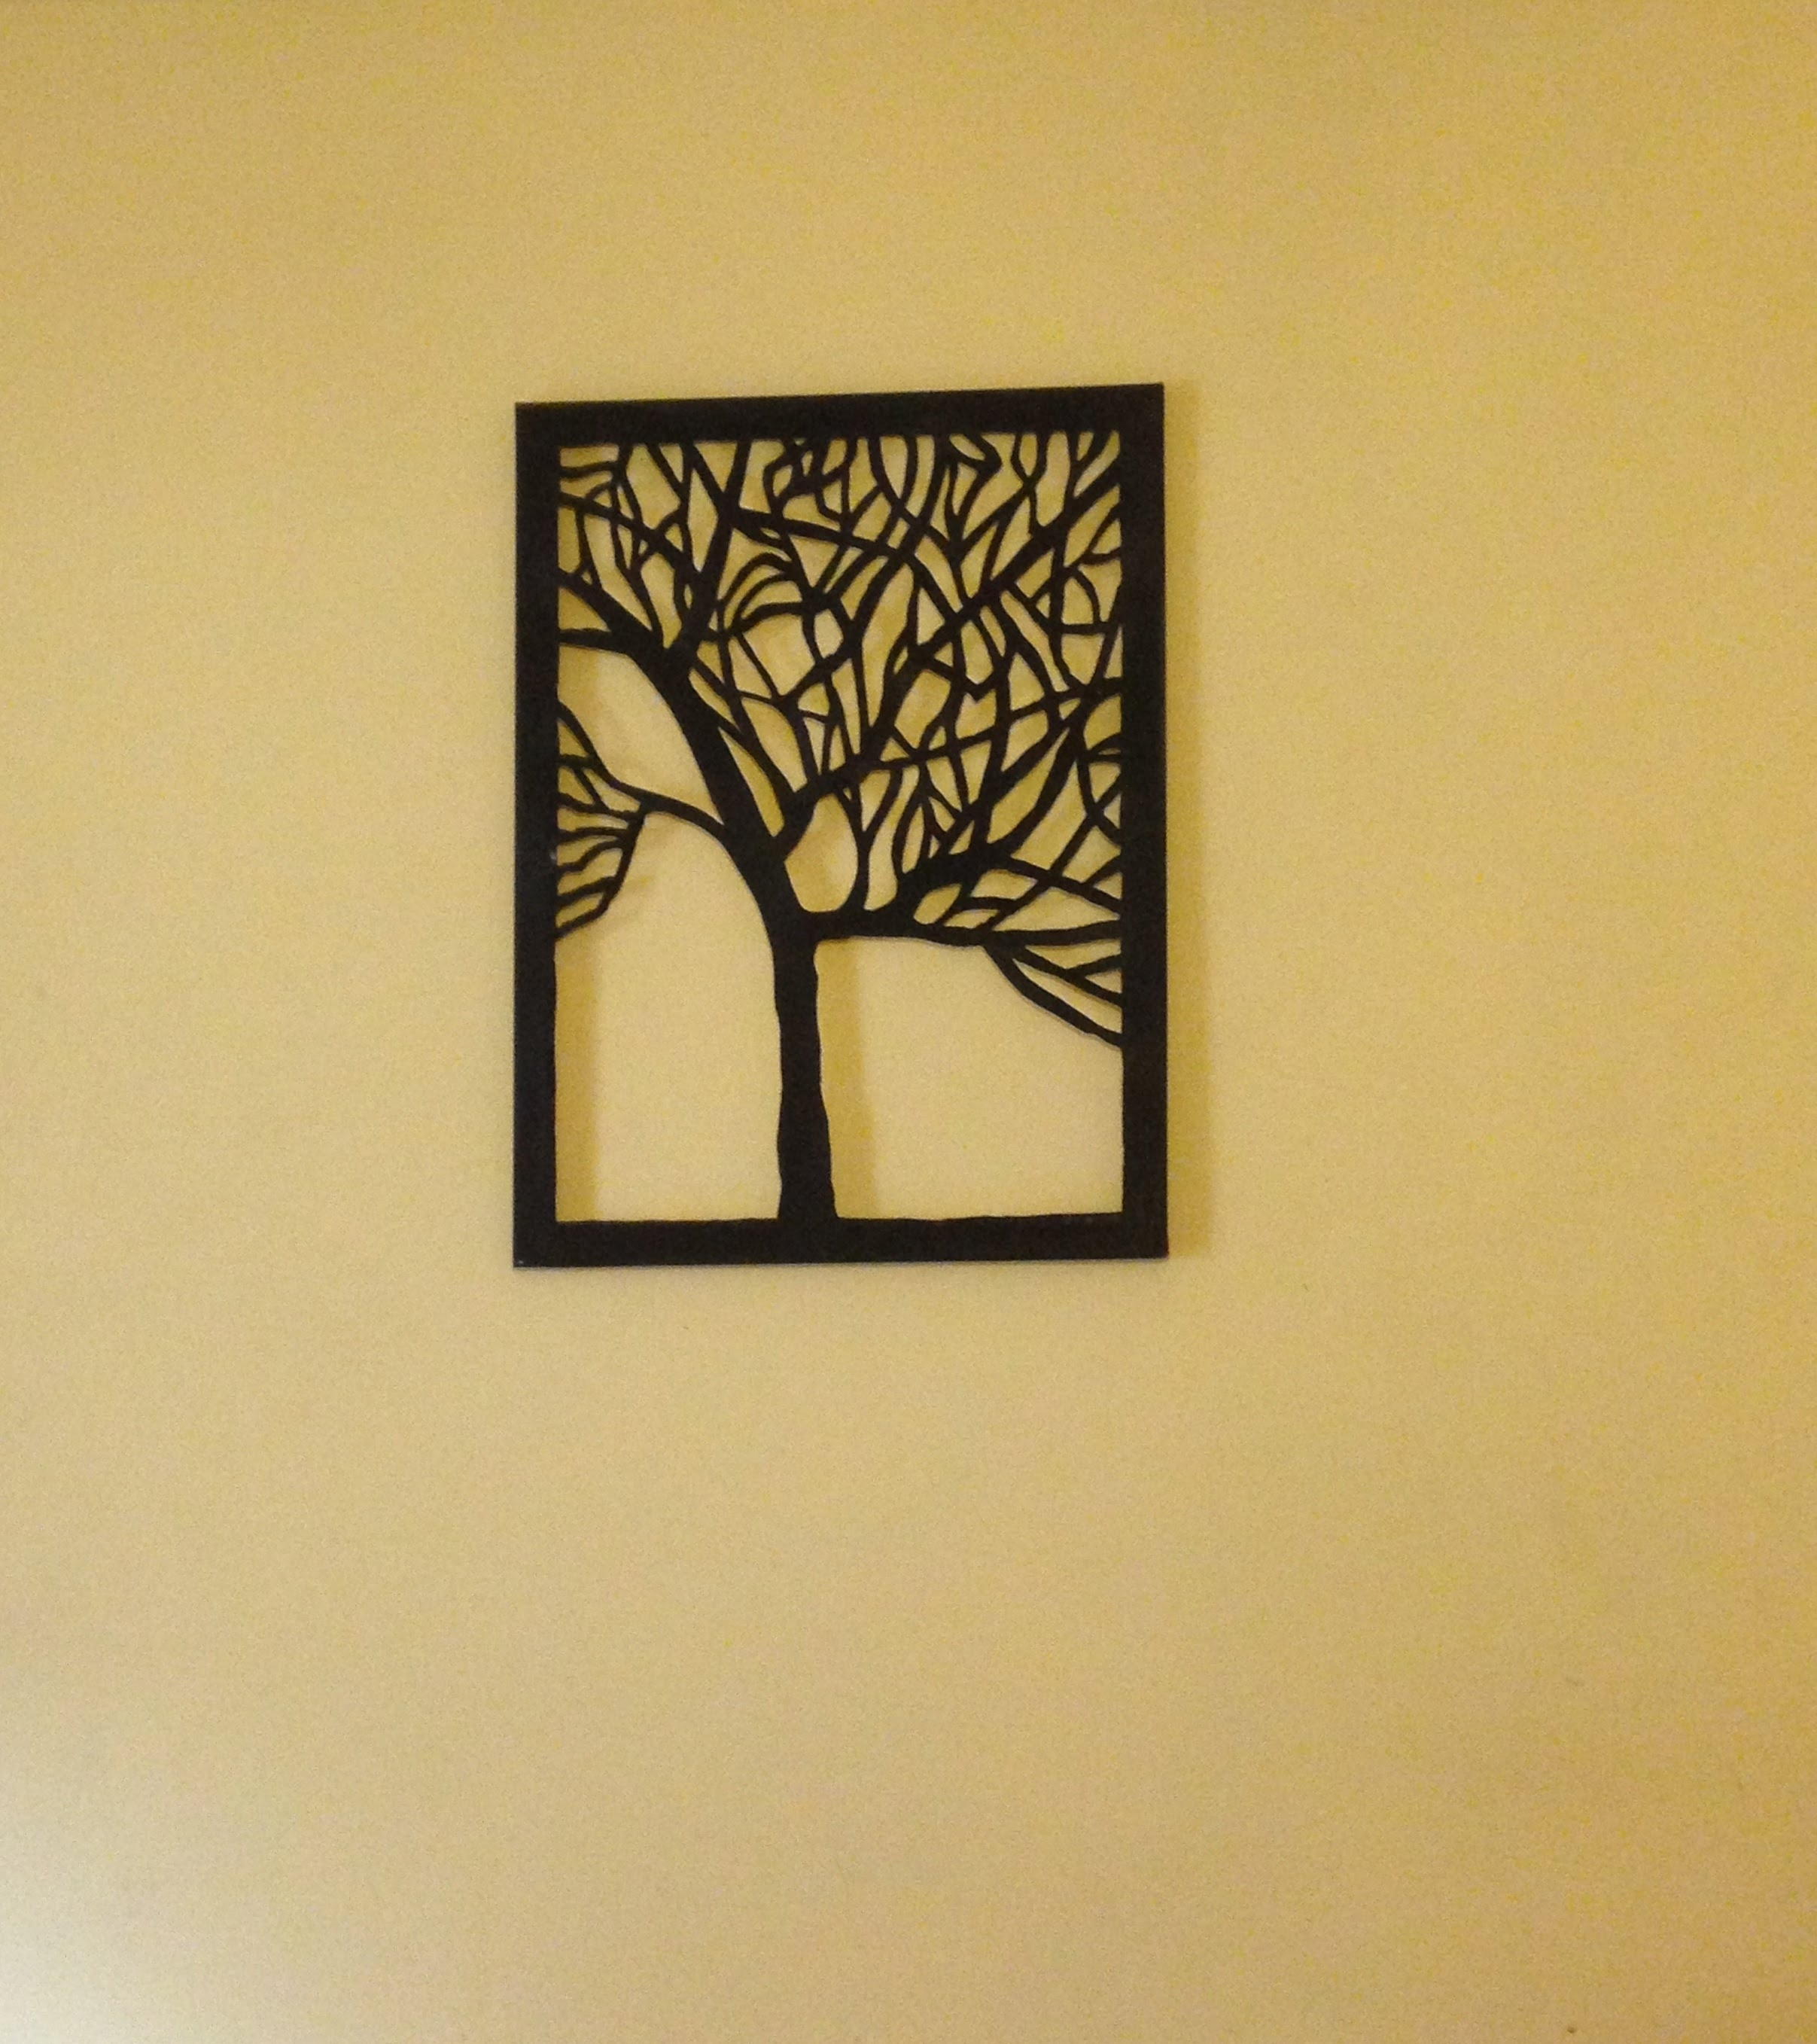 Amazing Diy Canvas Tree Cut Out (Wall Art Home Decor Idea) – Youtube For Most Recently Released Homemade Canvas Wall Art (View 2 of 15)